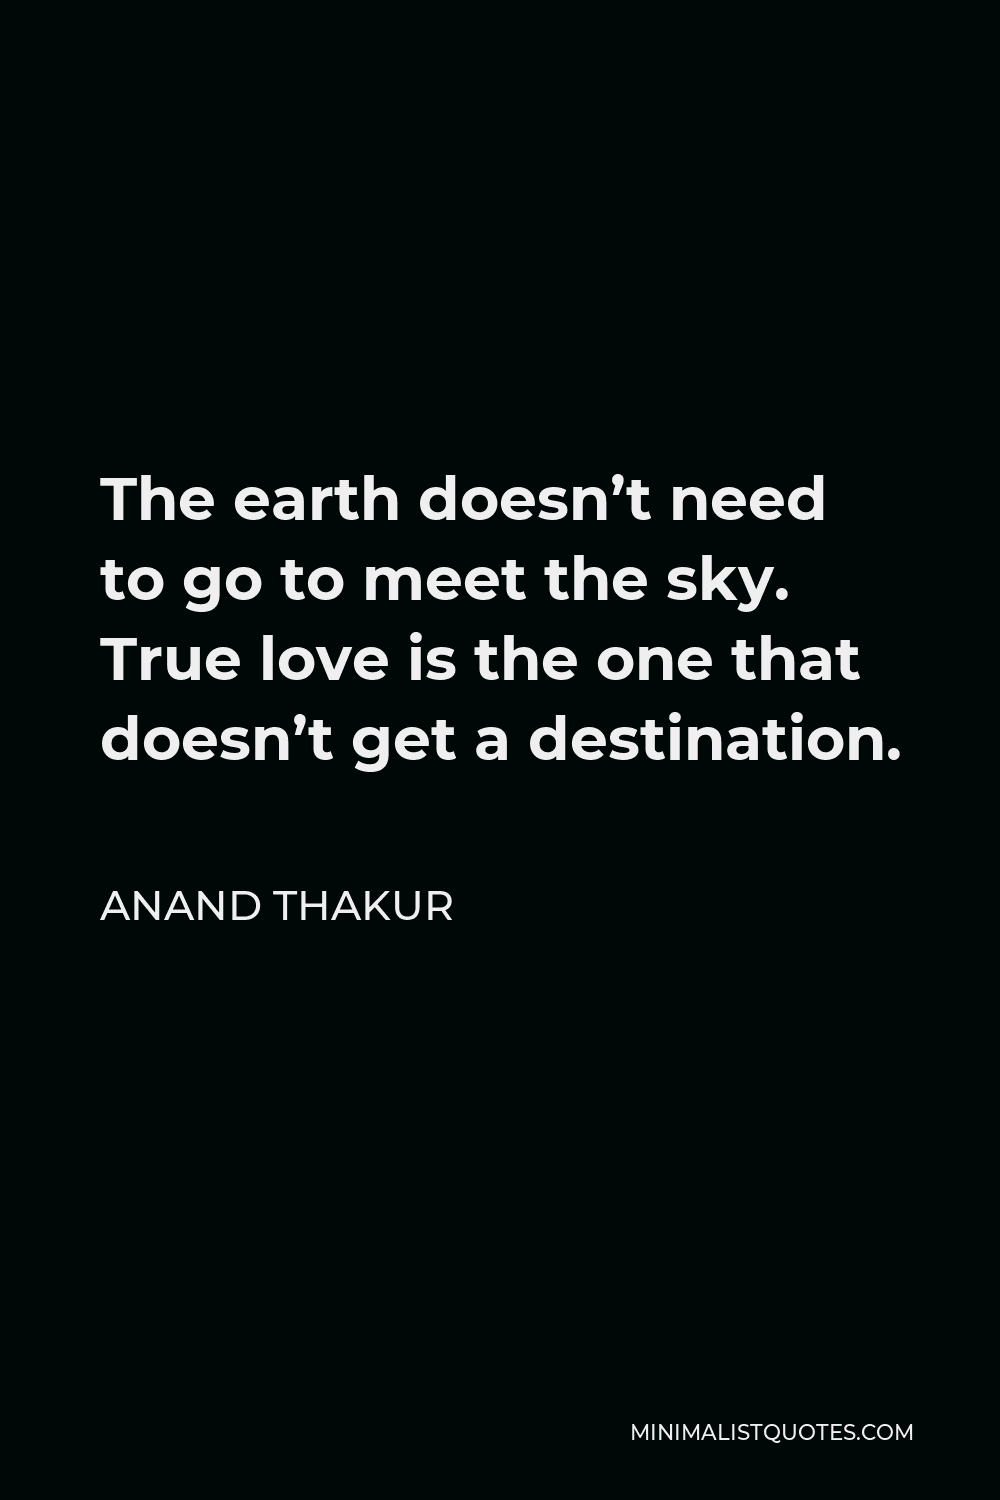 Anand Thakur Quote - The earth doesn't need to go to meet the sky.Truelove is the one thatdoes not get a destination.